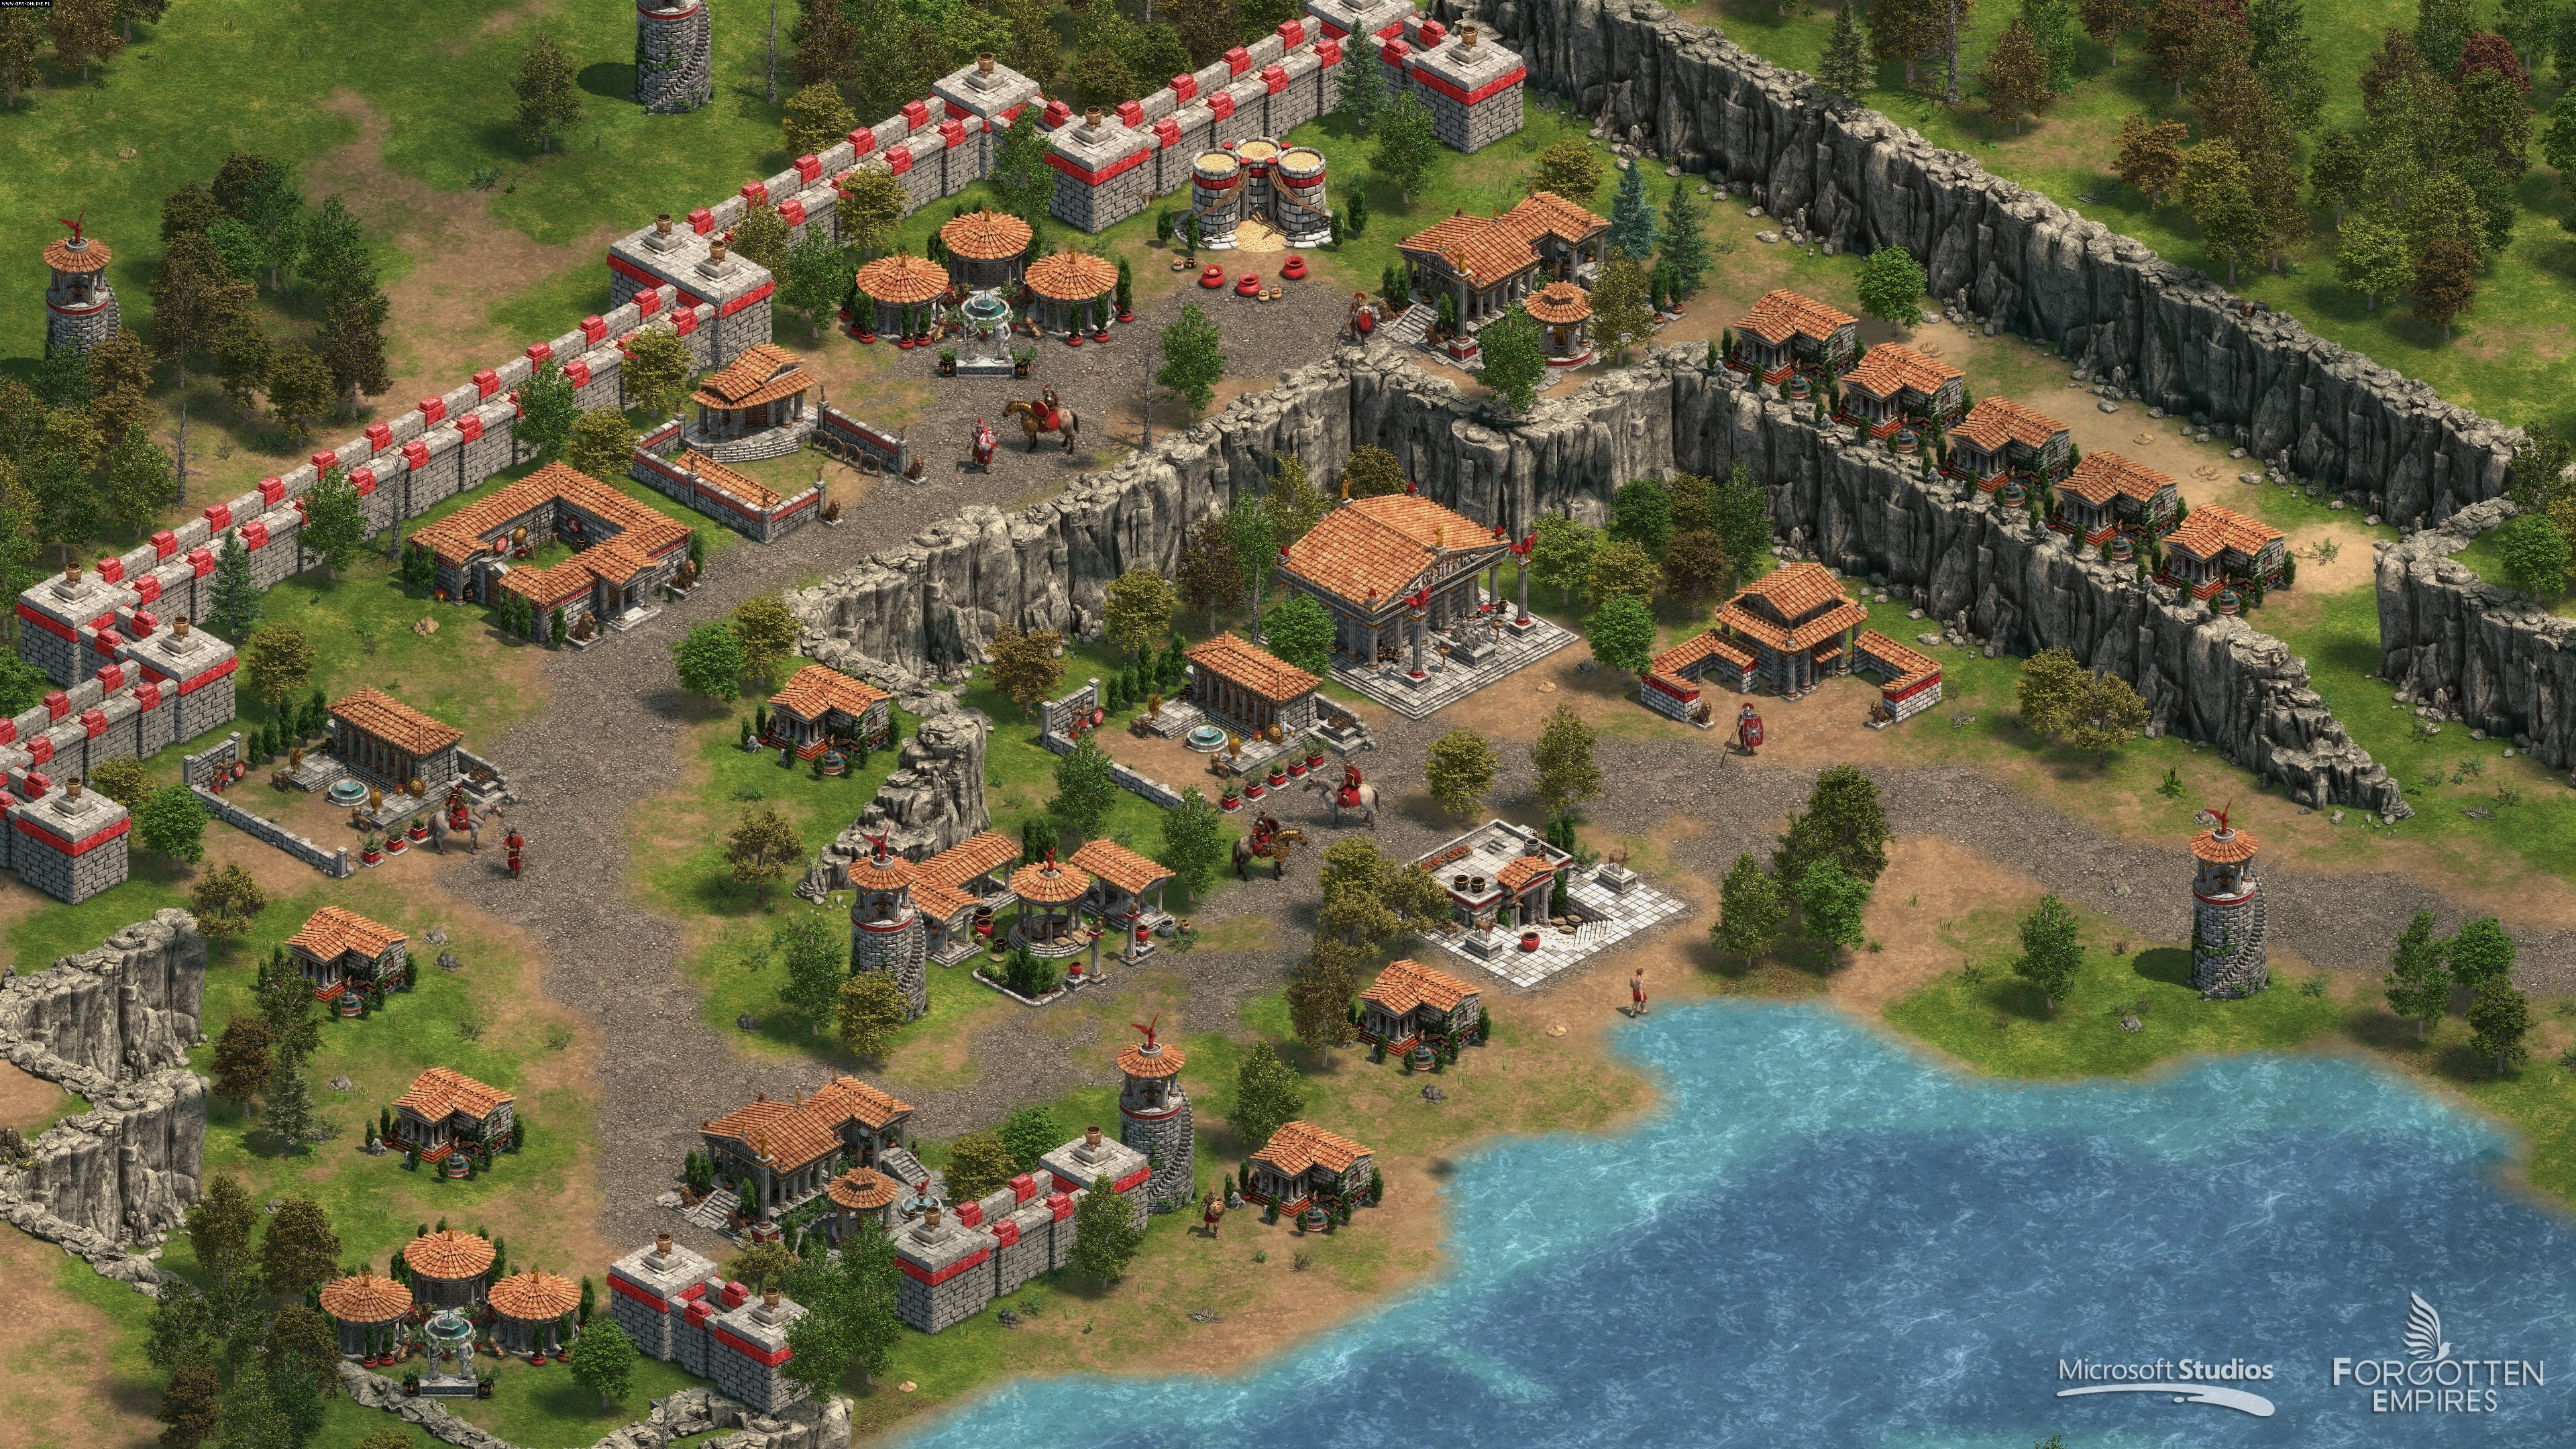 Age of Empires: Definitive Edition PC Games Image 5/12, Forgotten Empires,